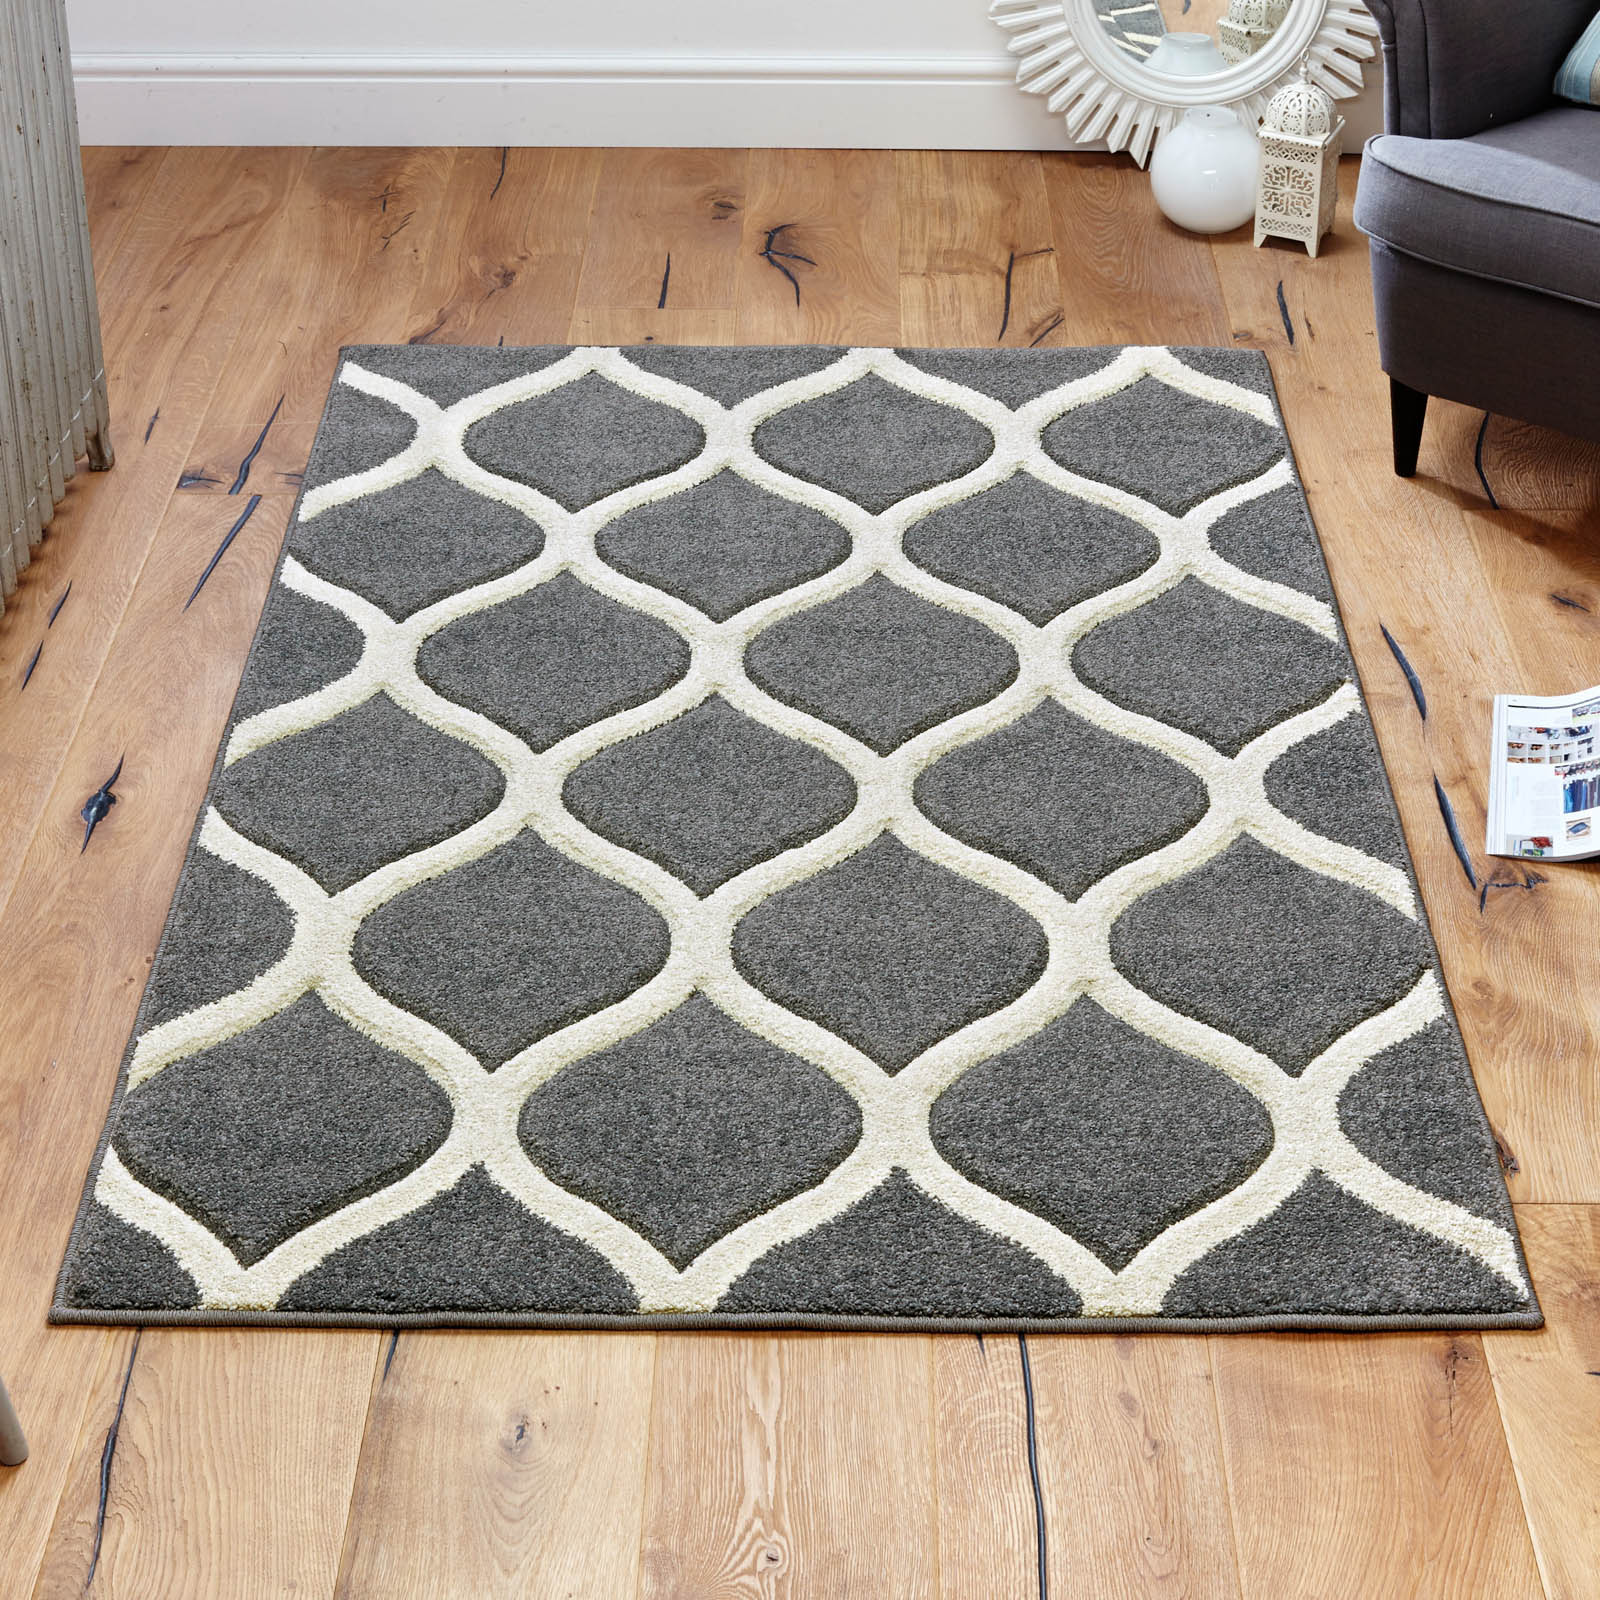 Viva Rugs 1095 E in Grey and Ivory